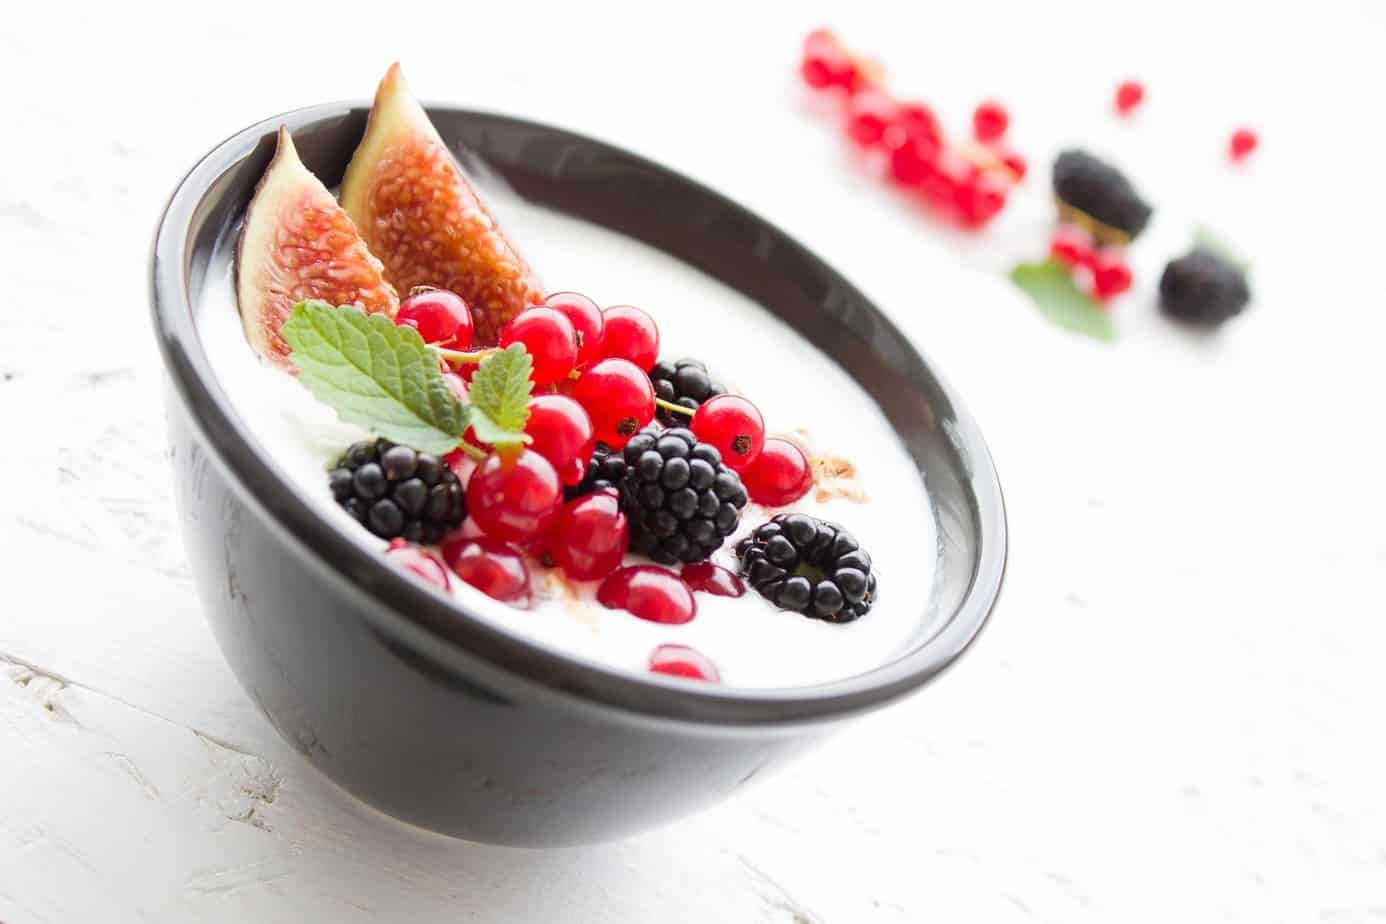 yogurt topped with lingonberries, blackberries and fresh fig helps support bone health